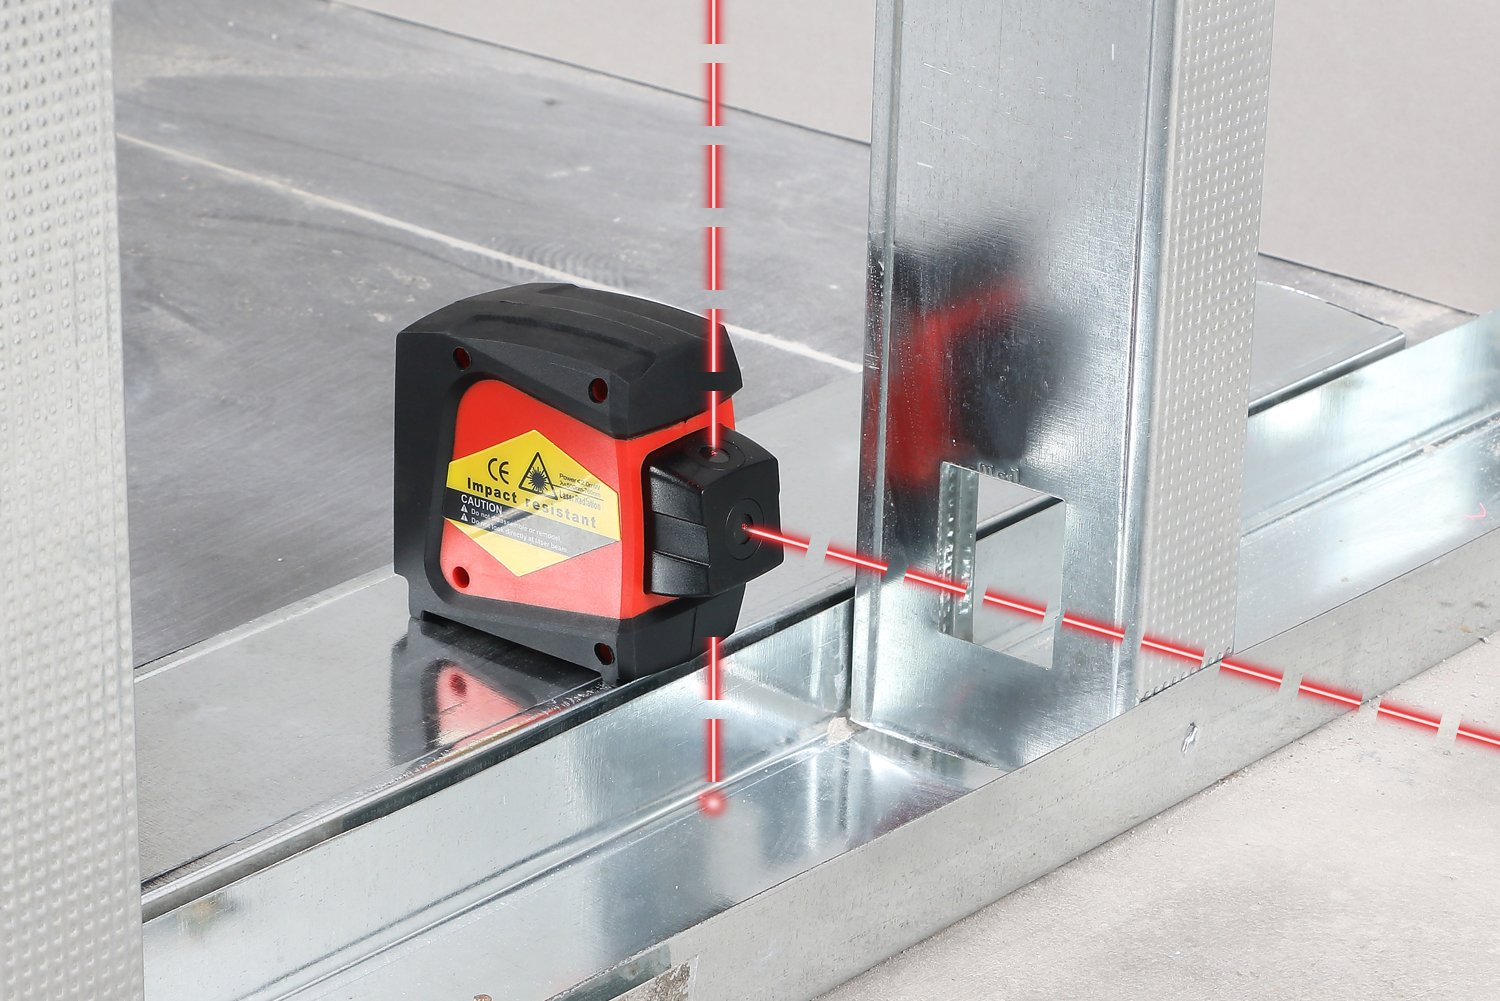 Firecore F333R Red 3-Point Laser Alignment with Self-Leveling by Firecore (Image #2)